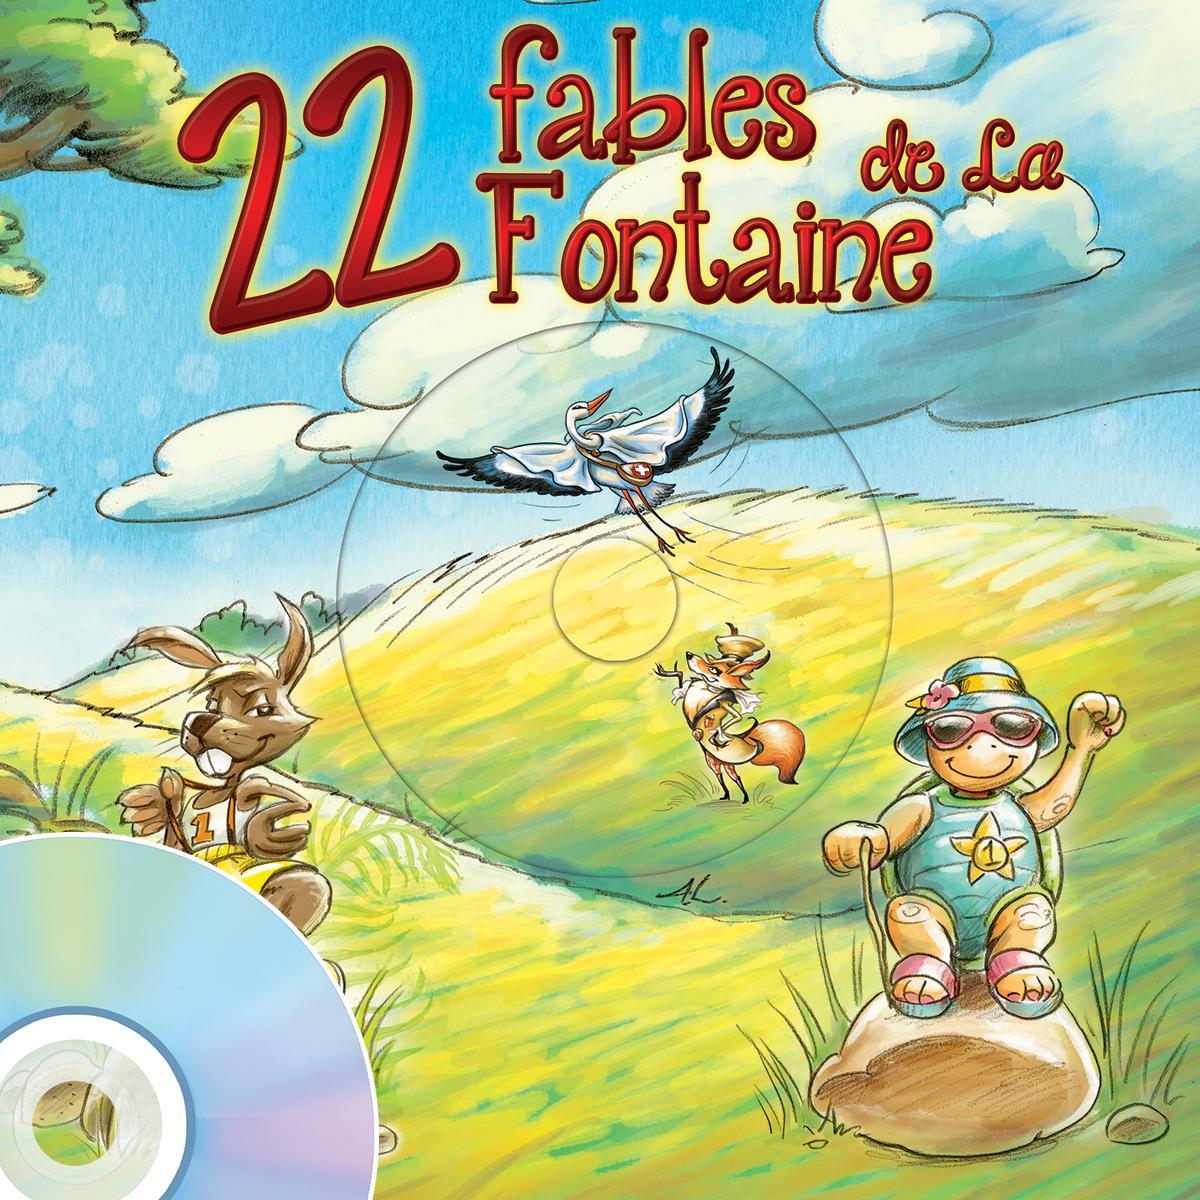 22 fables de La Fontaine